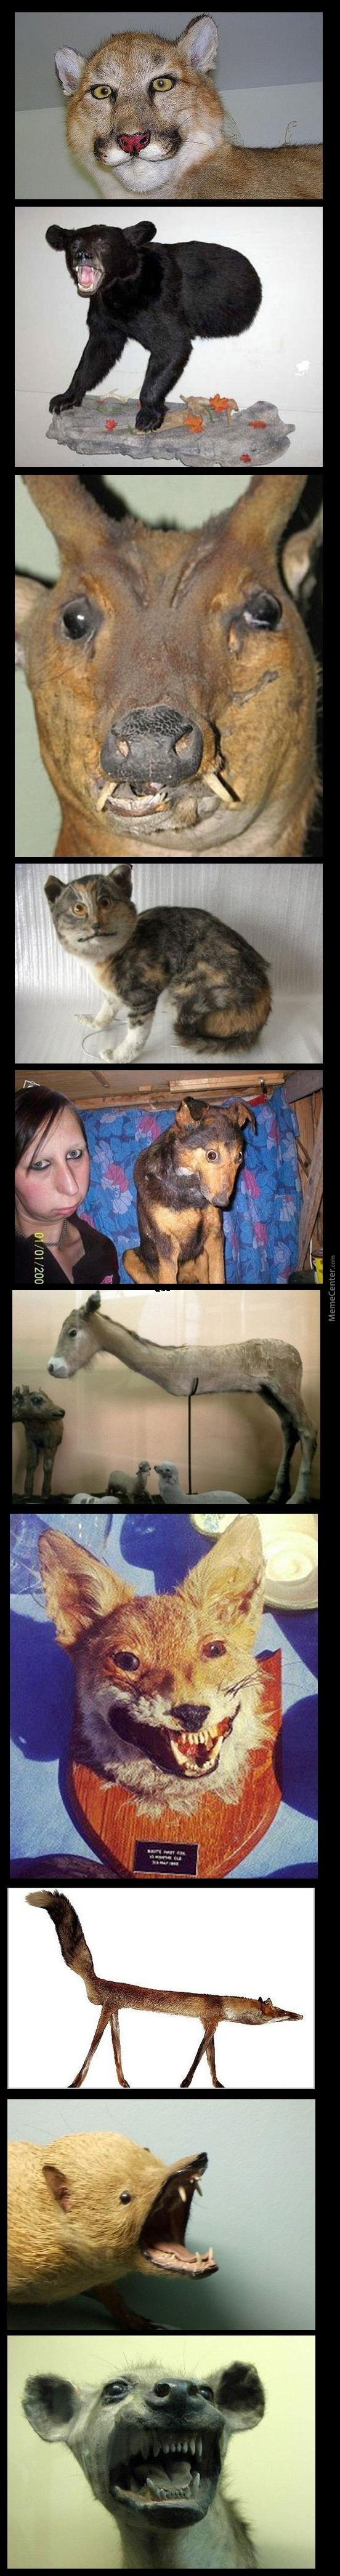 Bad Taxidermy Jobs: Part One